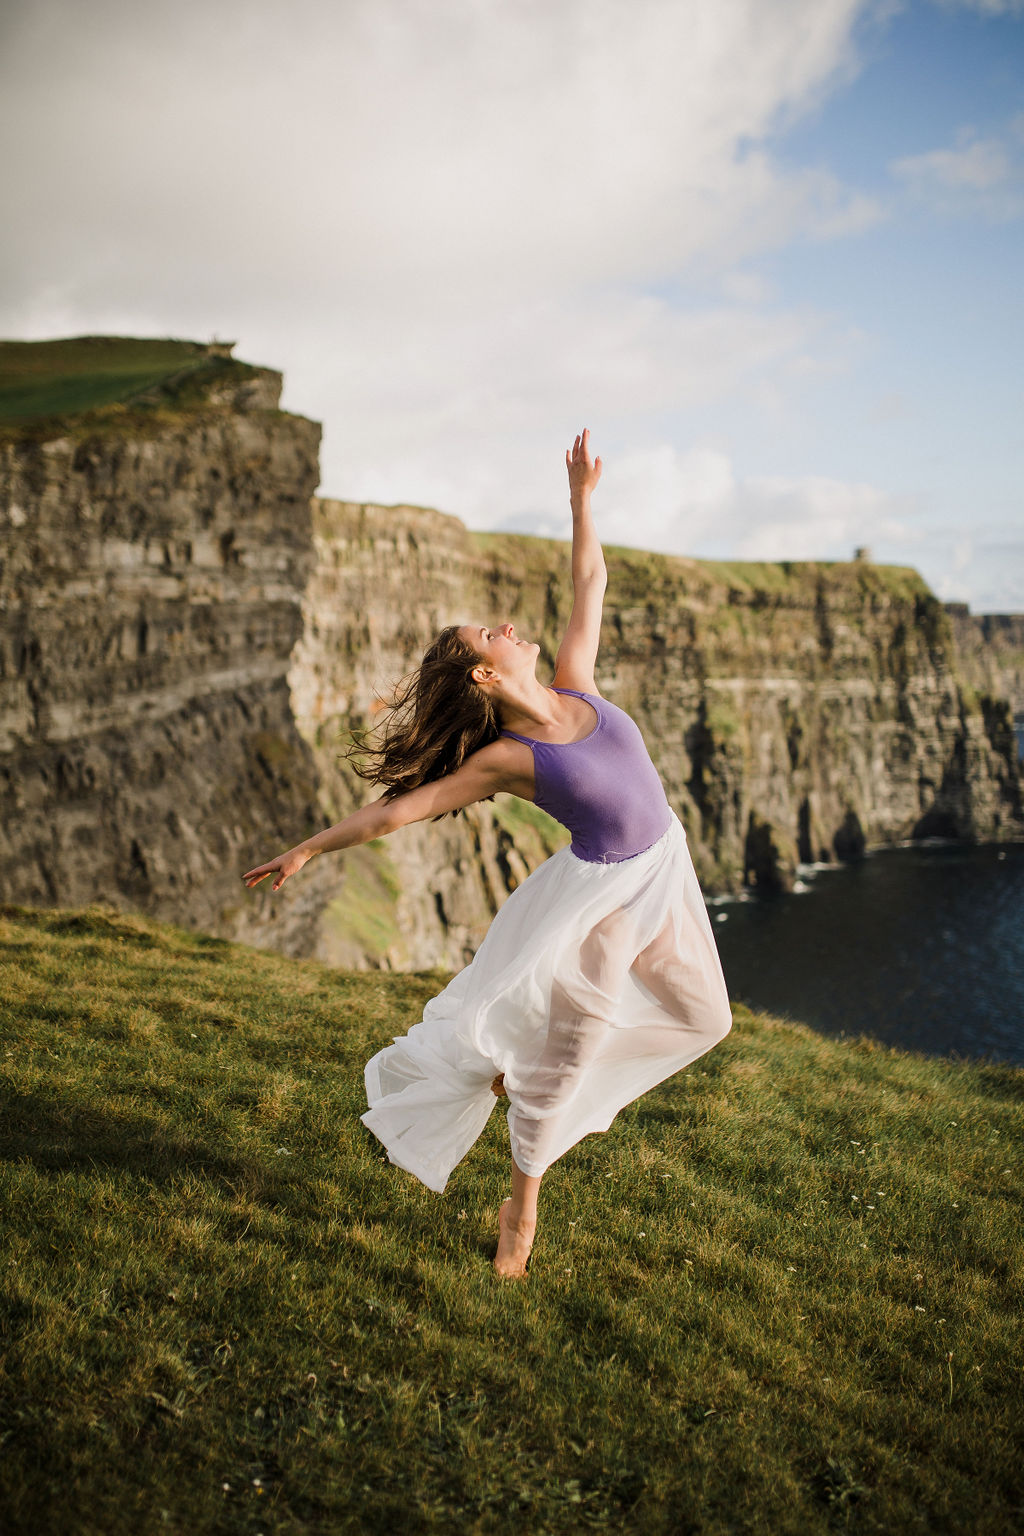 ireland studio rachel desjardins travel photography all rights reserved minnesota photographer lizcannor doolin cliffs of moher  dance dancing dancer modern ballet erin campagna